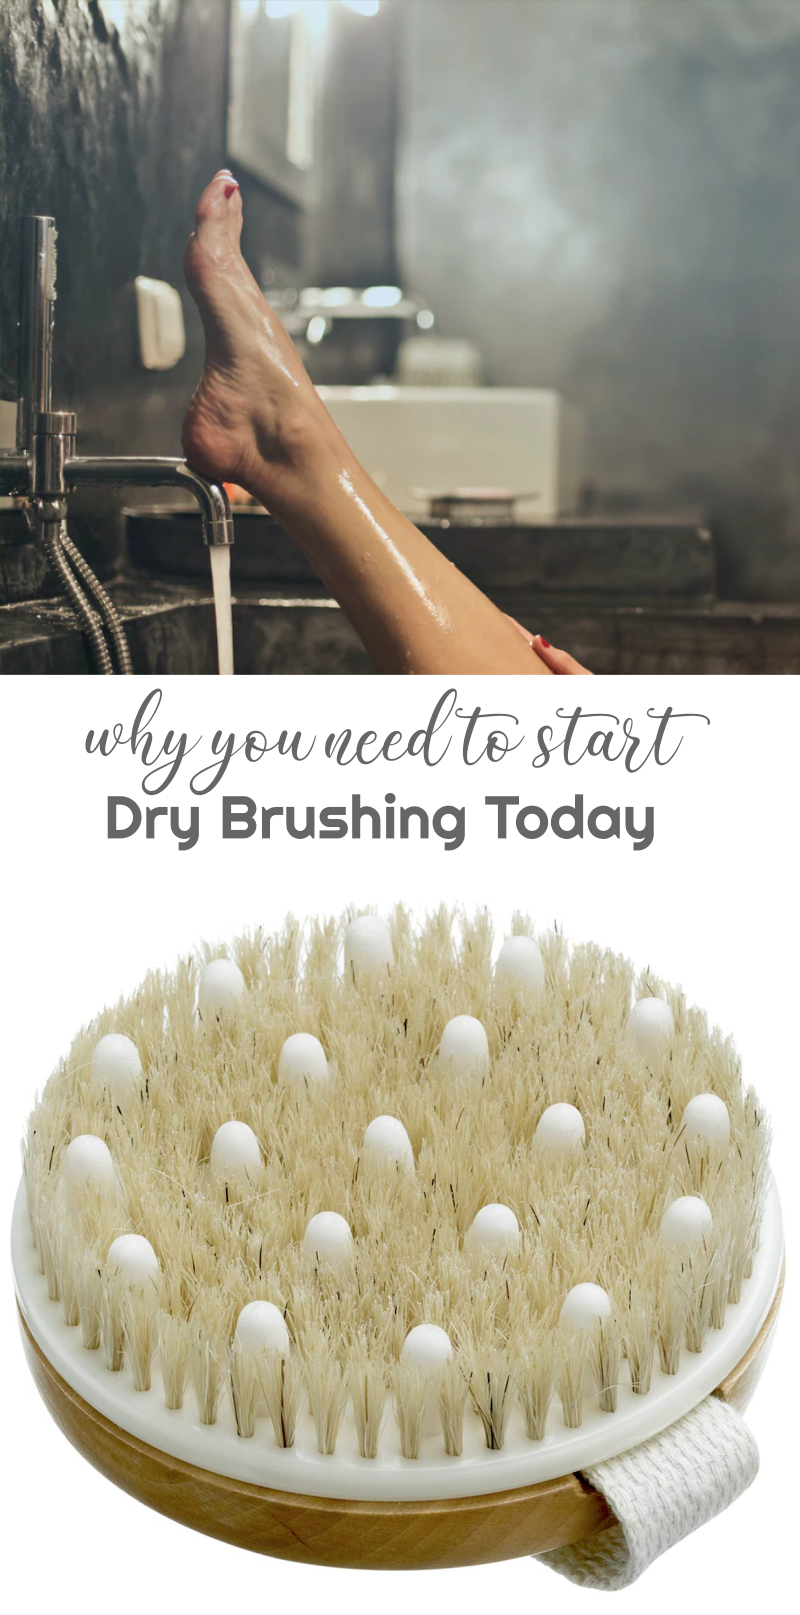 Why You Need to Start Dry Brushing Today